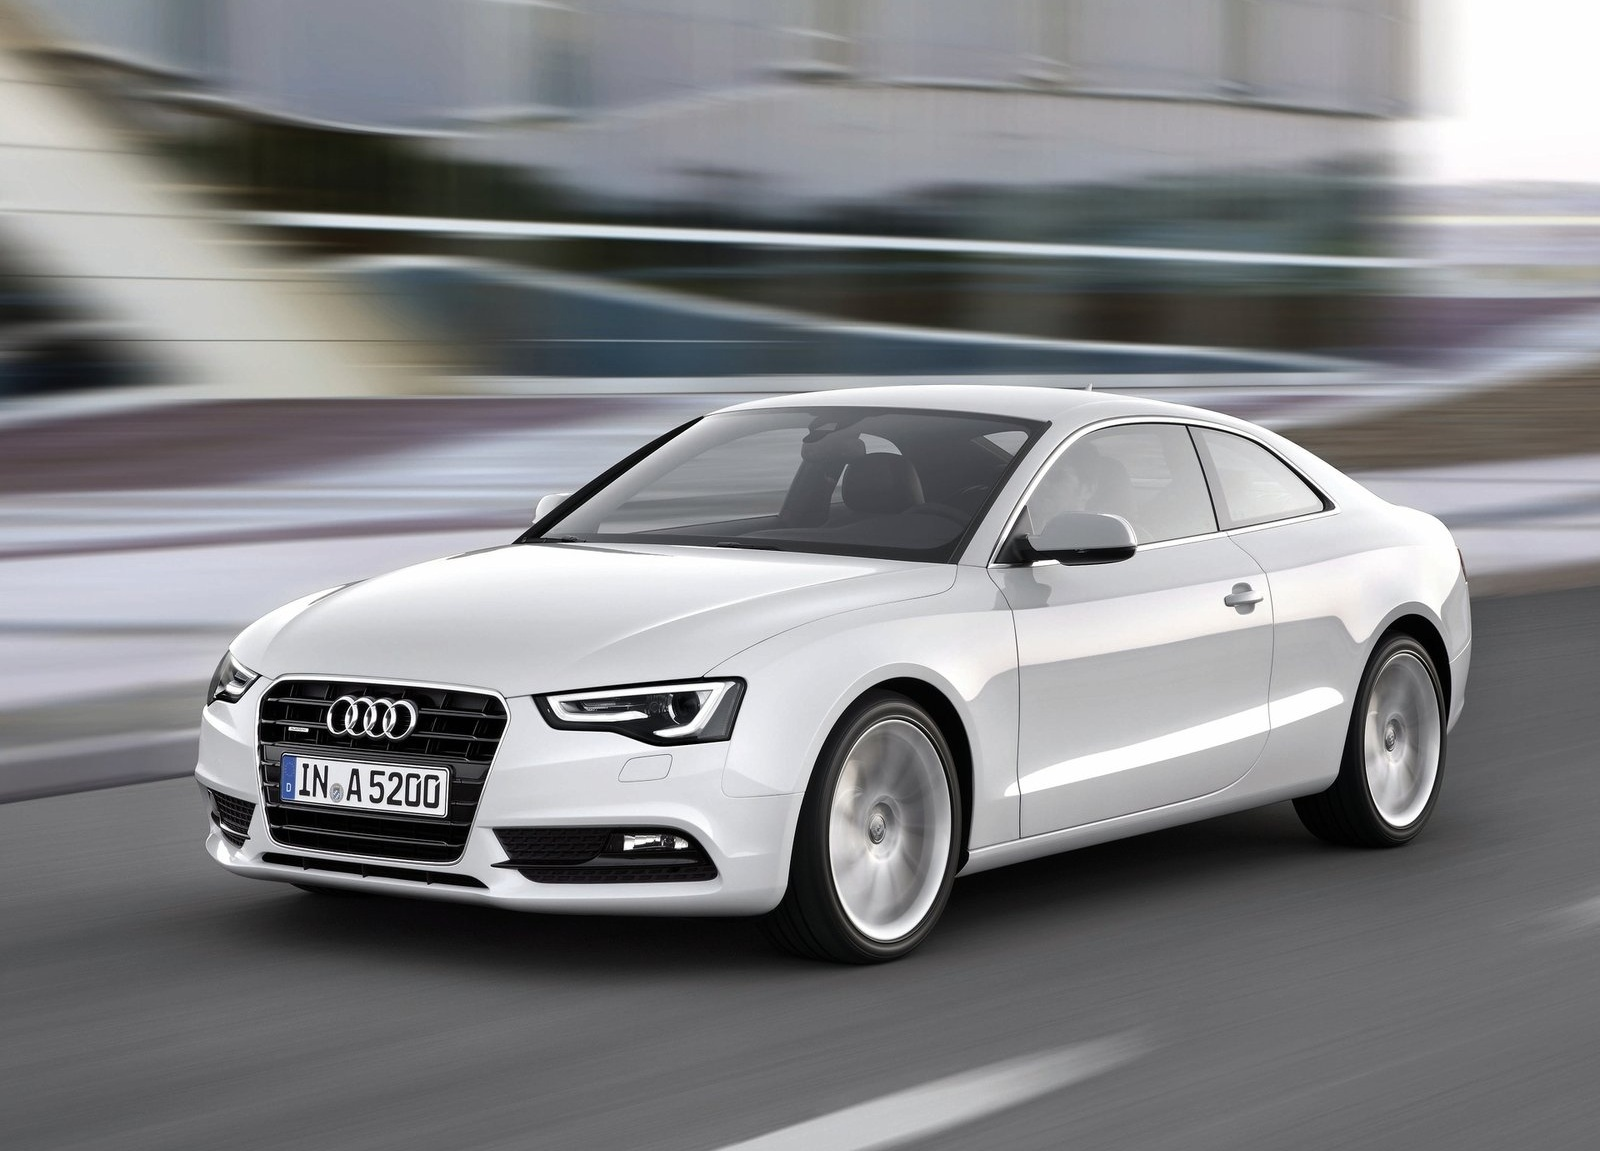 Latest Audi A5 to Drop V8 Engine and Weigh 100kg Less - GTspirit